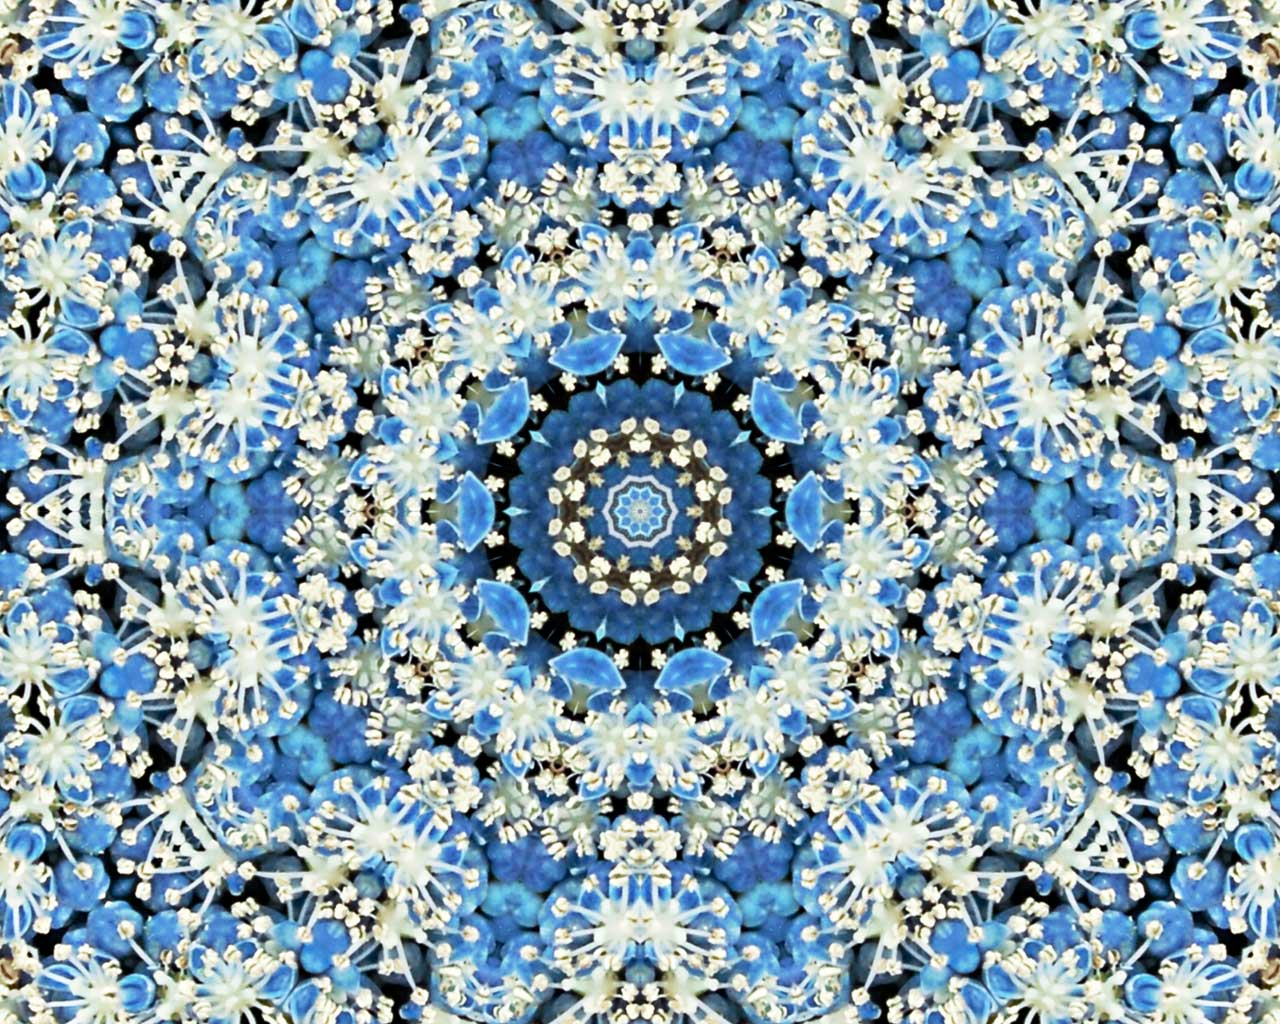 Kaleidoscope free desktop background by Jeanne Selep